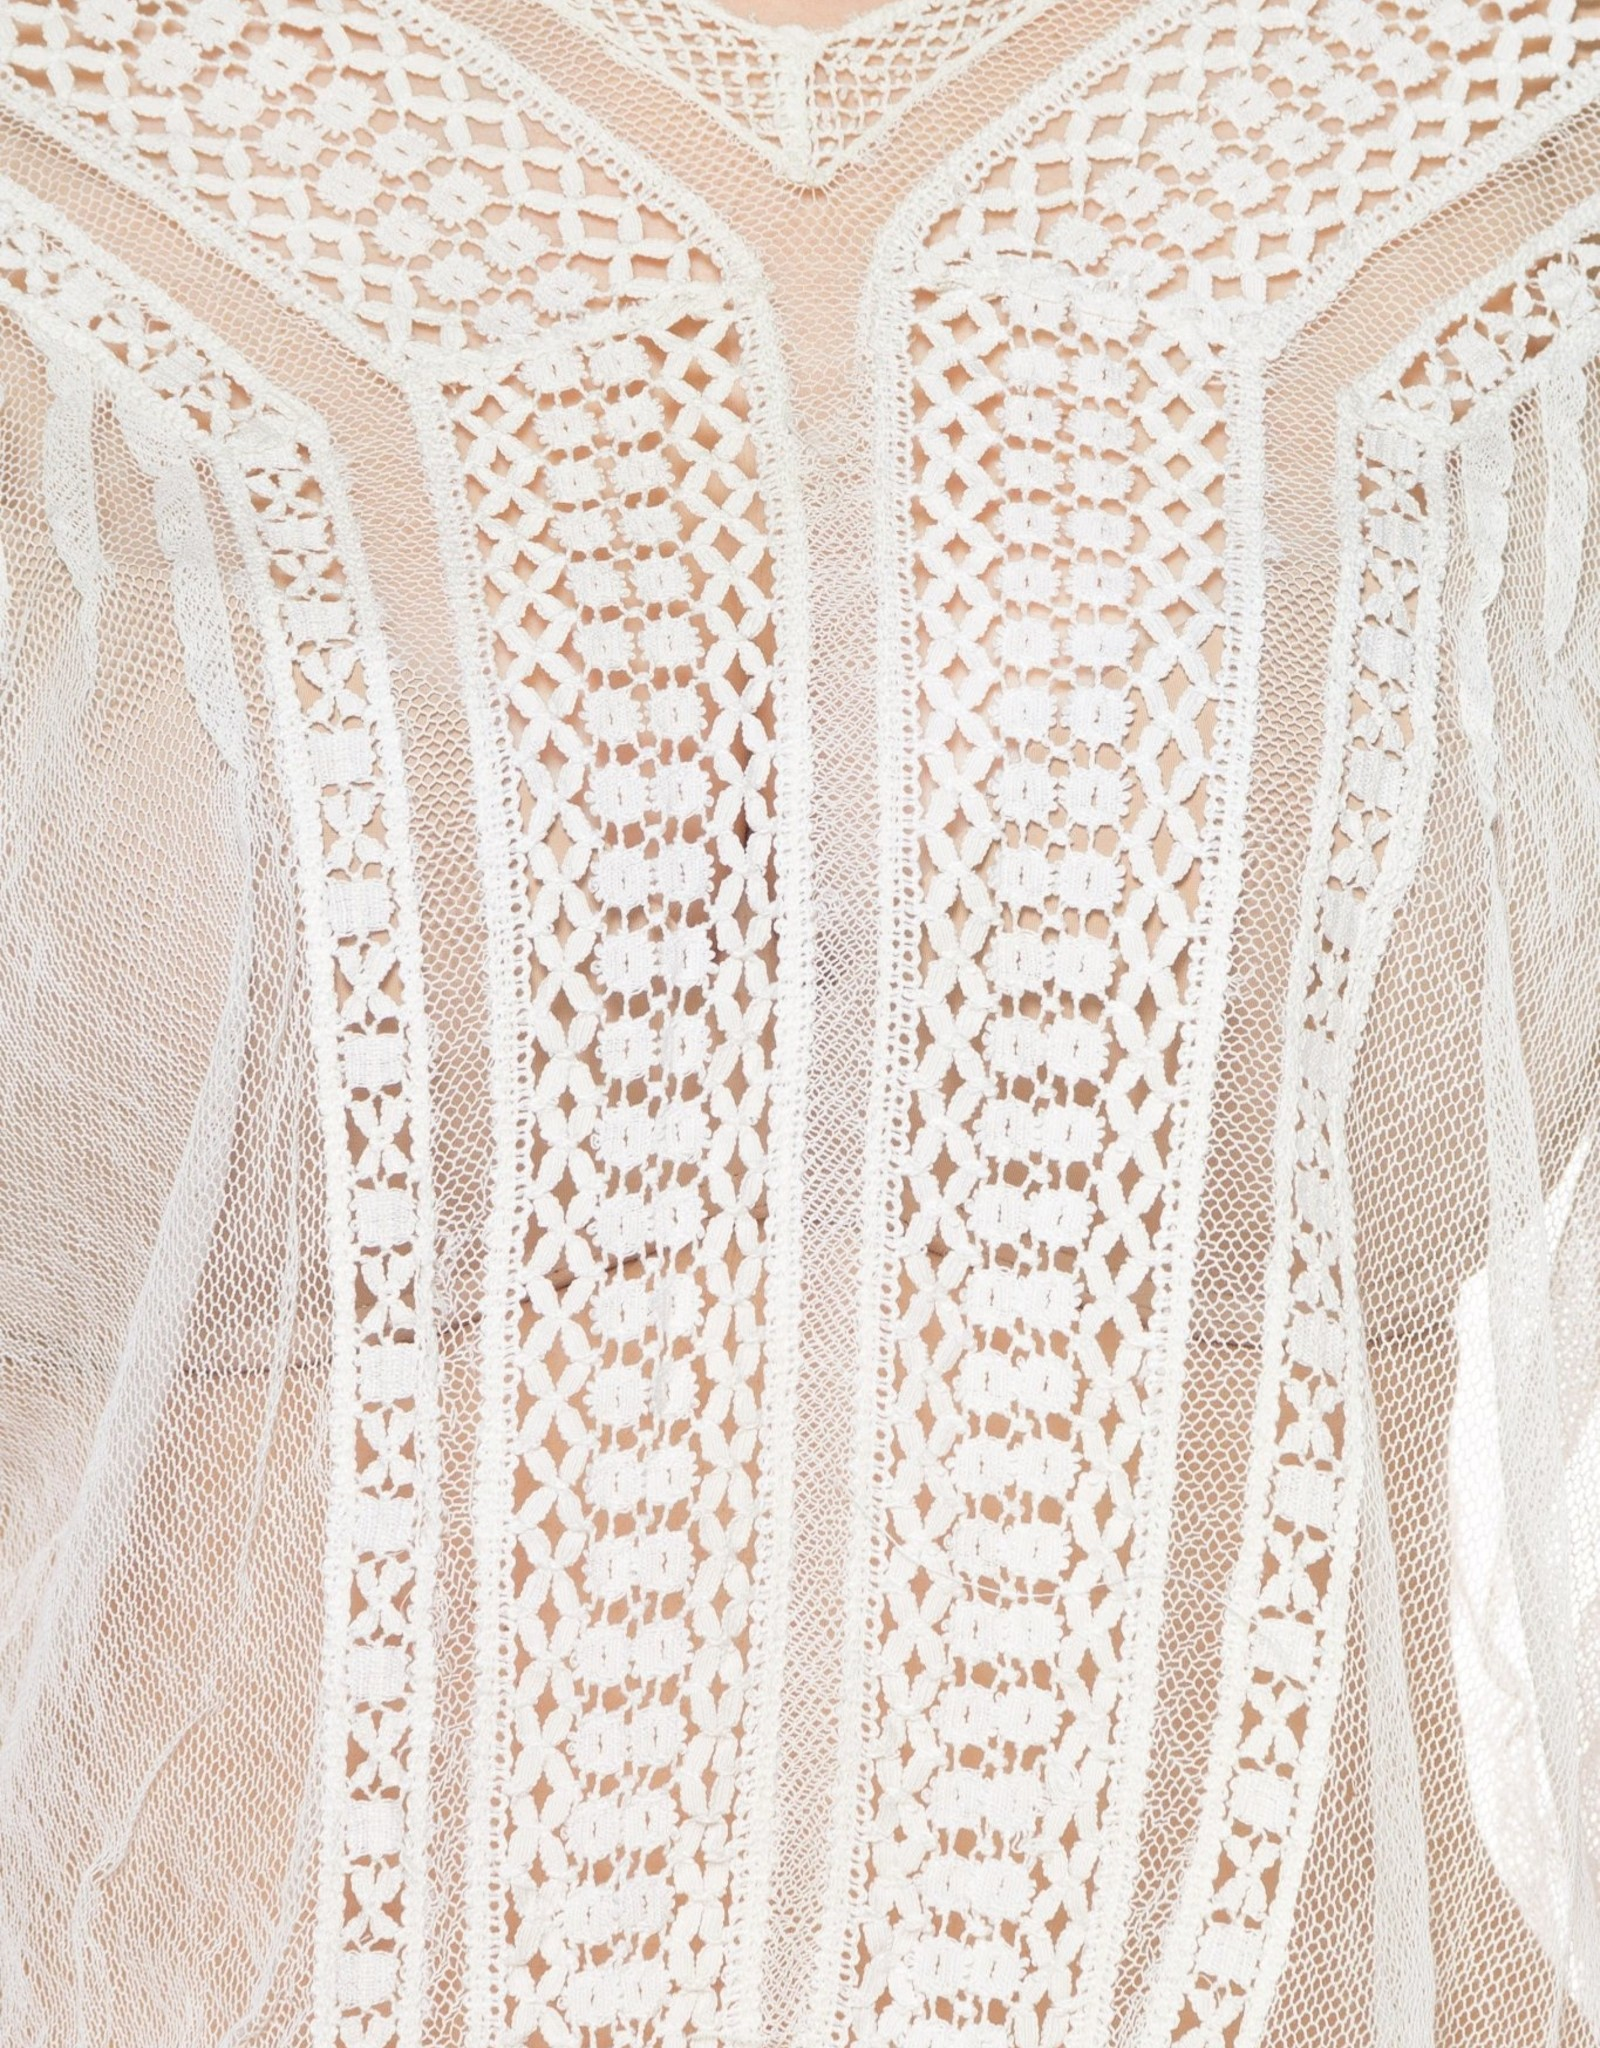 Wyld Blue Vintage 1900s White Sheer Cotton Net Blouse